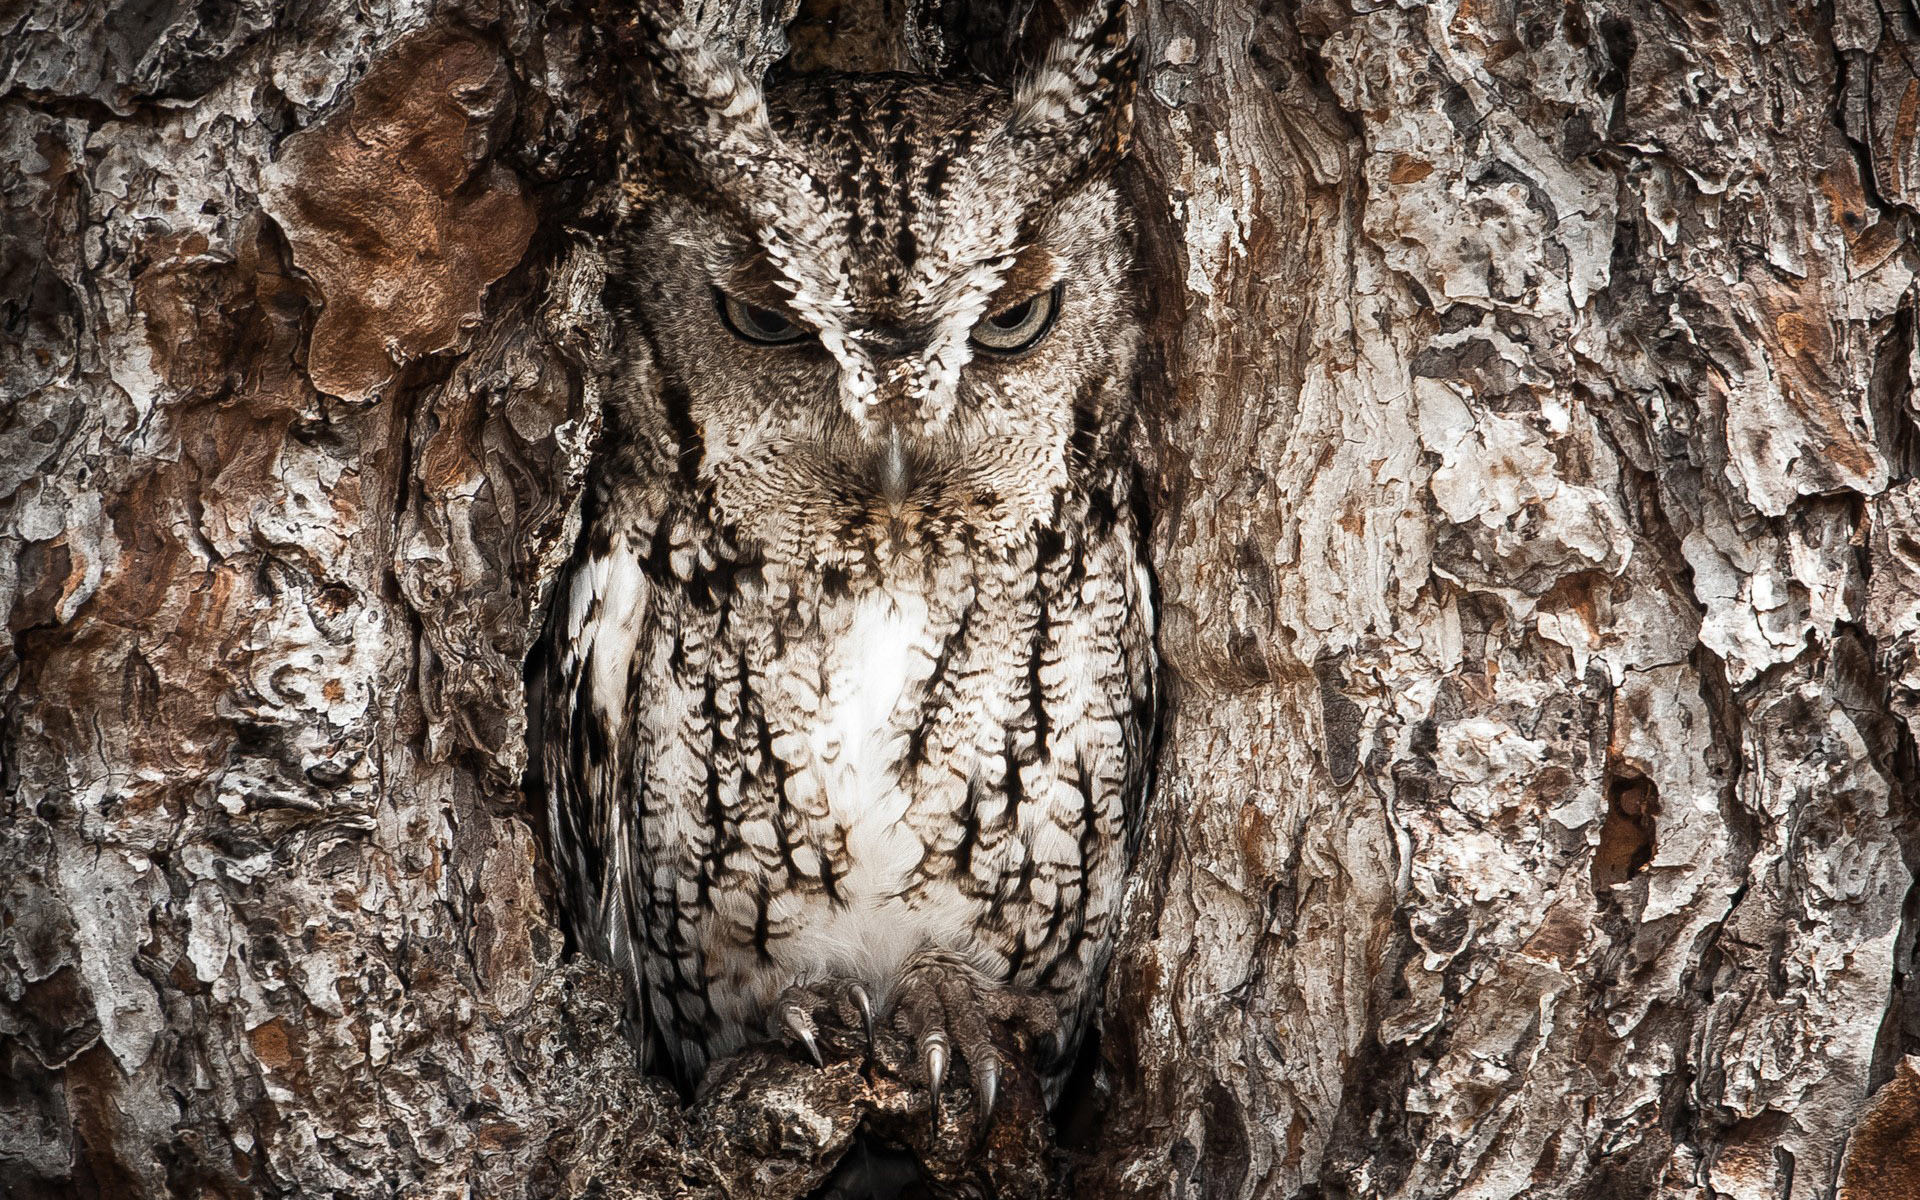 1920x1200 realtree camouflage owl animal hd wallpapers Wallpaper HD